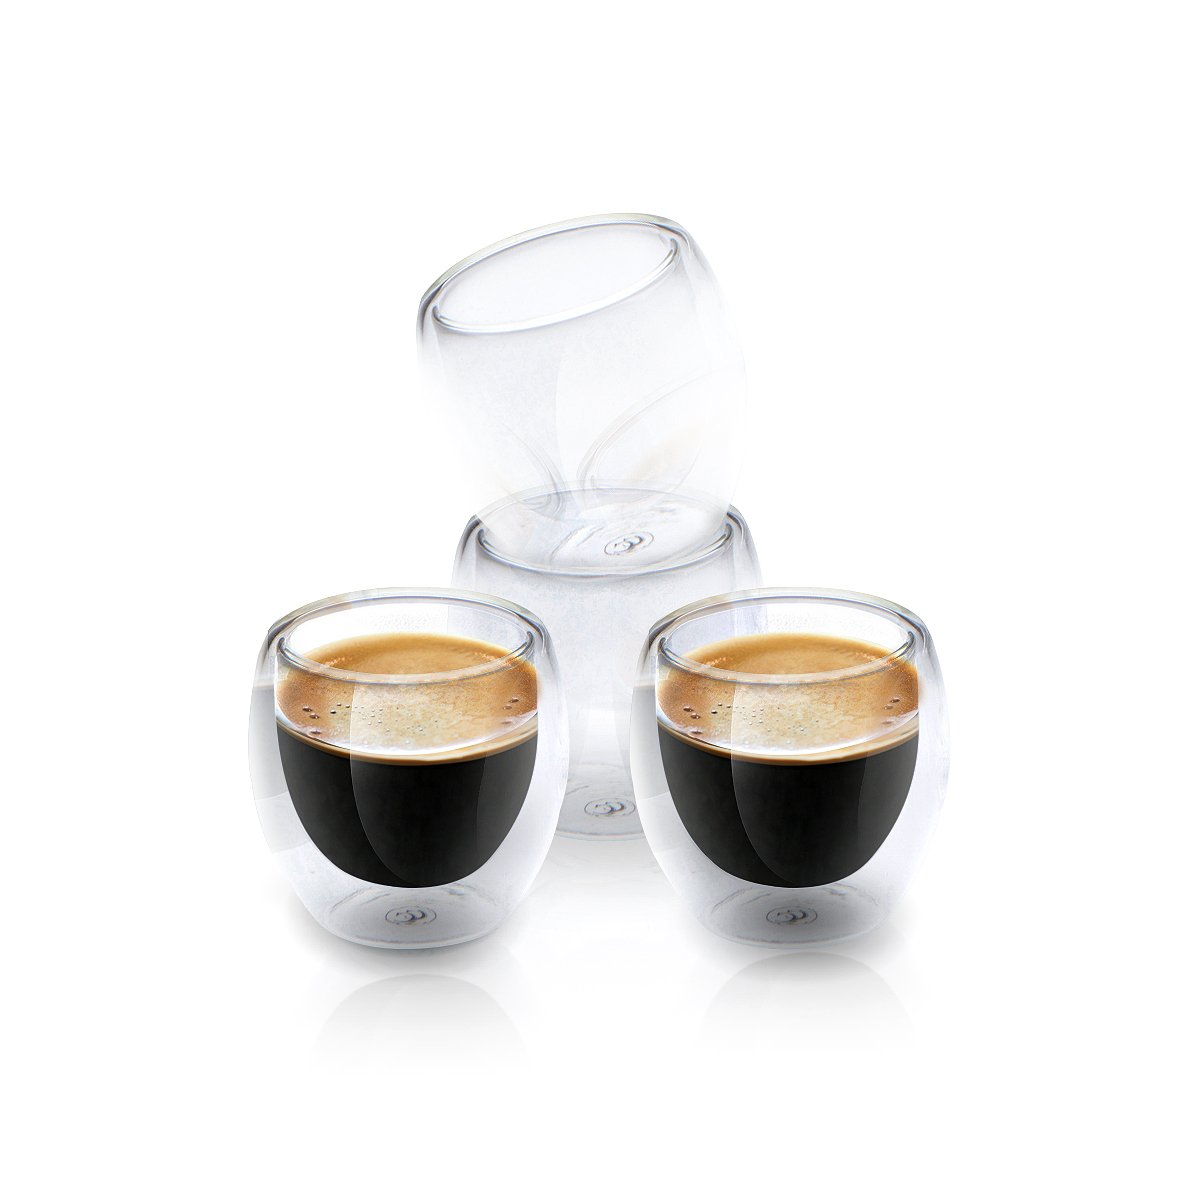 Espresso Shot Glass Cups For All Coffee Lovers - 80ml (2.7 oz) Double Walled Heat Resistant Clear Coffee Shots | Dishwasher Safe & Chic | Set Of 4 | Gift Box and Bonus Ebook